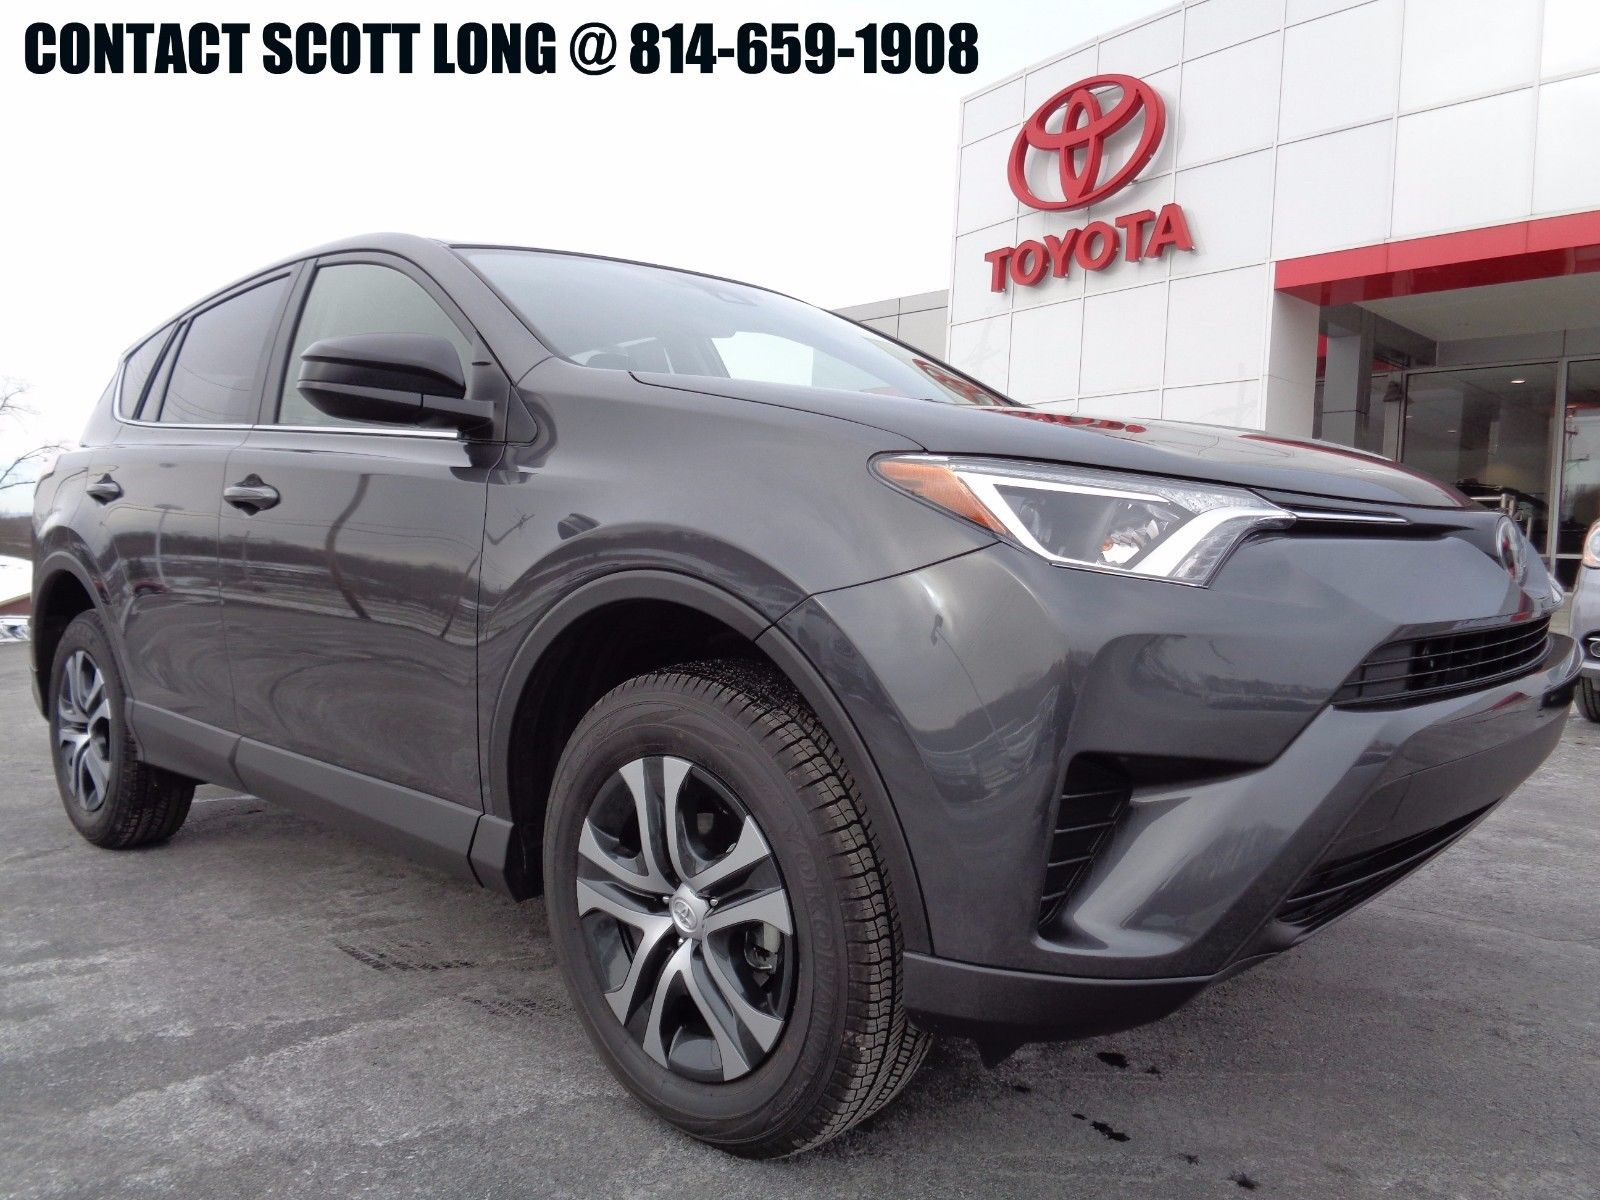 Awesome 2017 Toyota Rav4 Le All Wheel Drive Certified Warranty Awd Rear Camera Magnetic Gray Metallic 1836 Miles